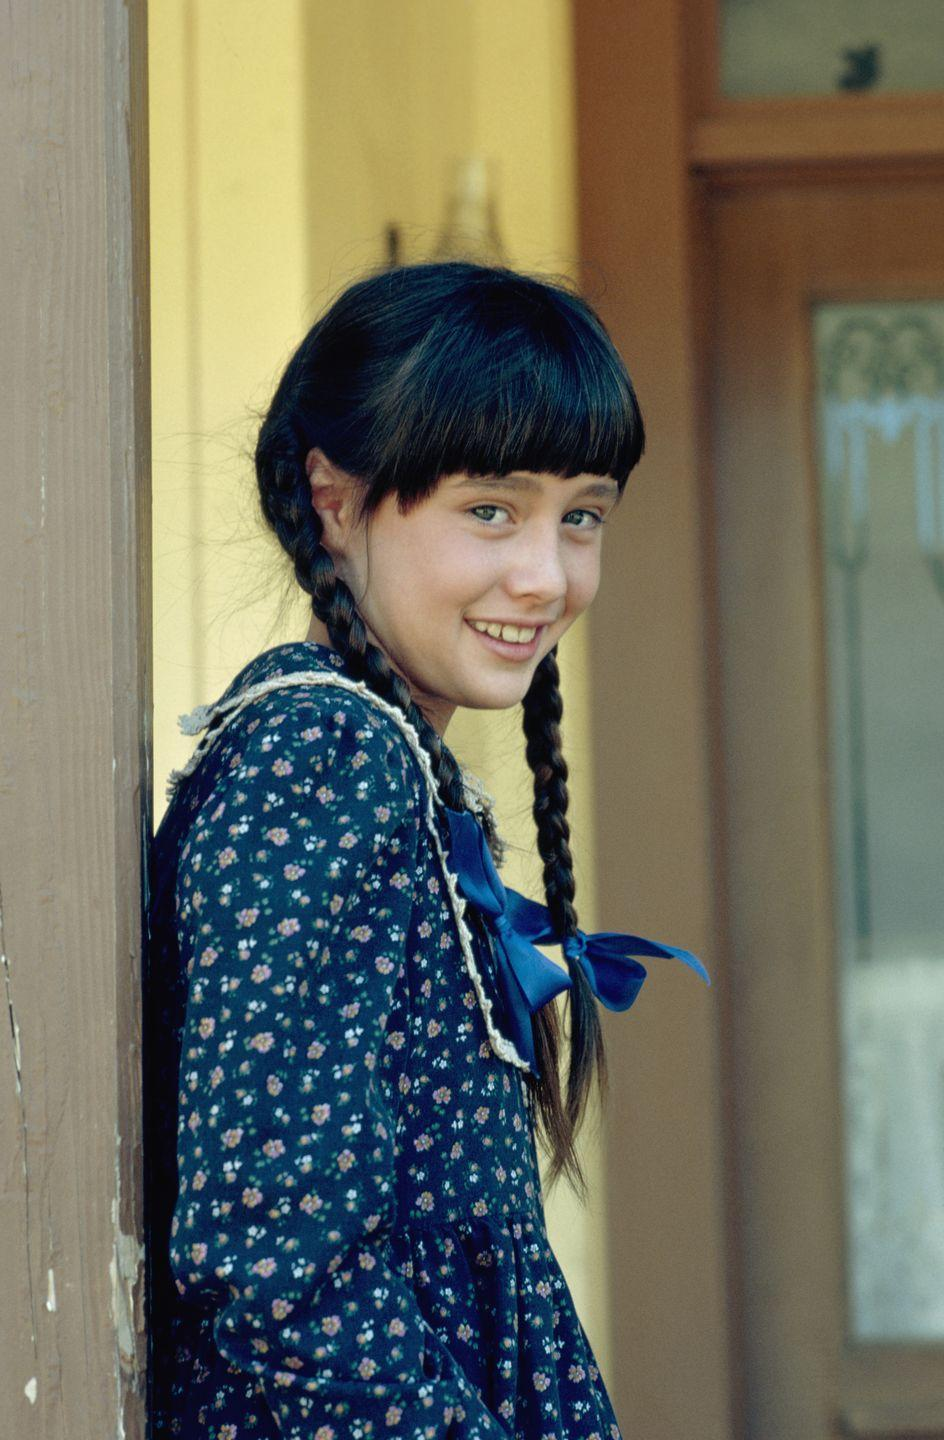 <p>Before she strolled through the halls of West Beverly High School in <em>90210</em>, Shannen Doherty booked gigs as a child actress in television and film, including <em>Little House on the Prairie </em>in 1982.</p>